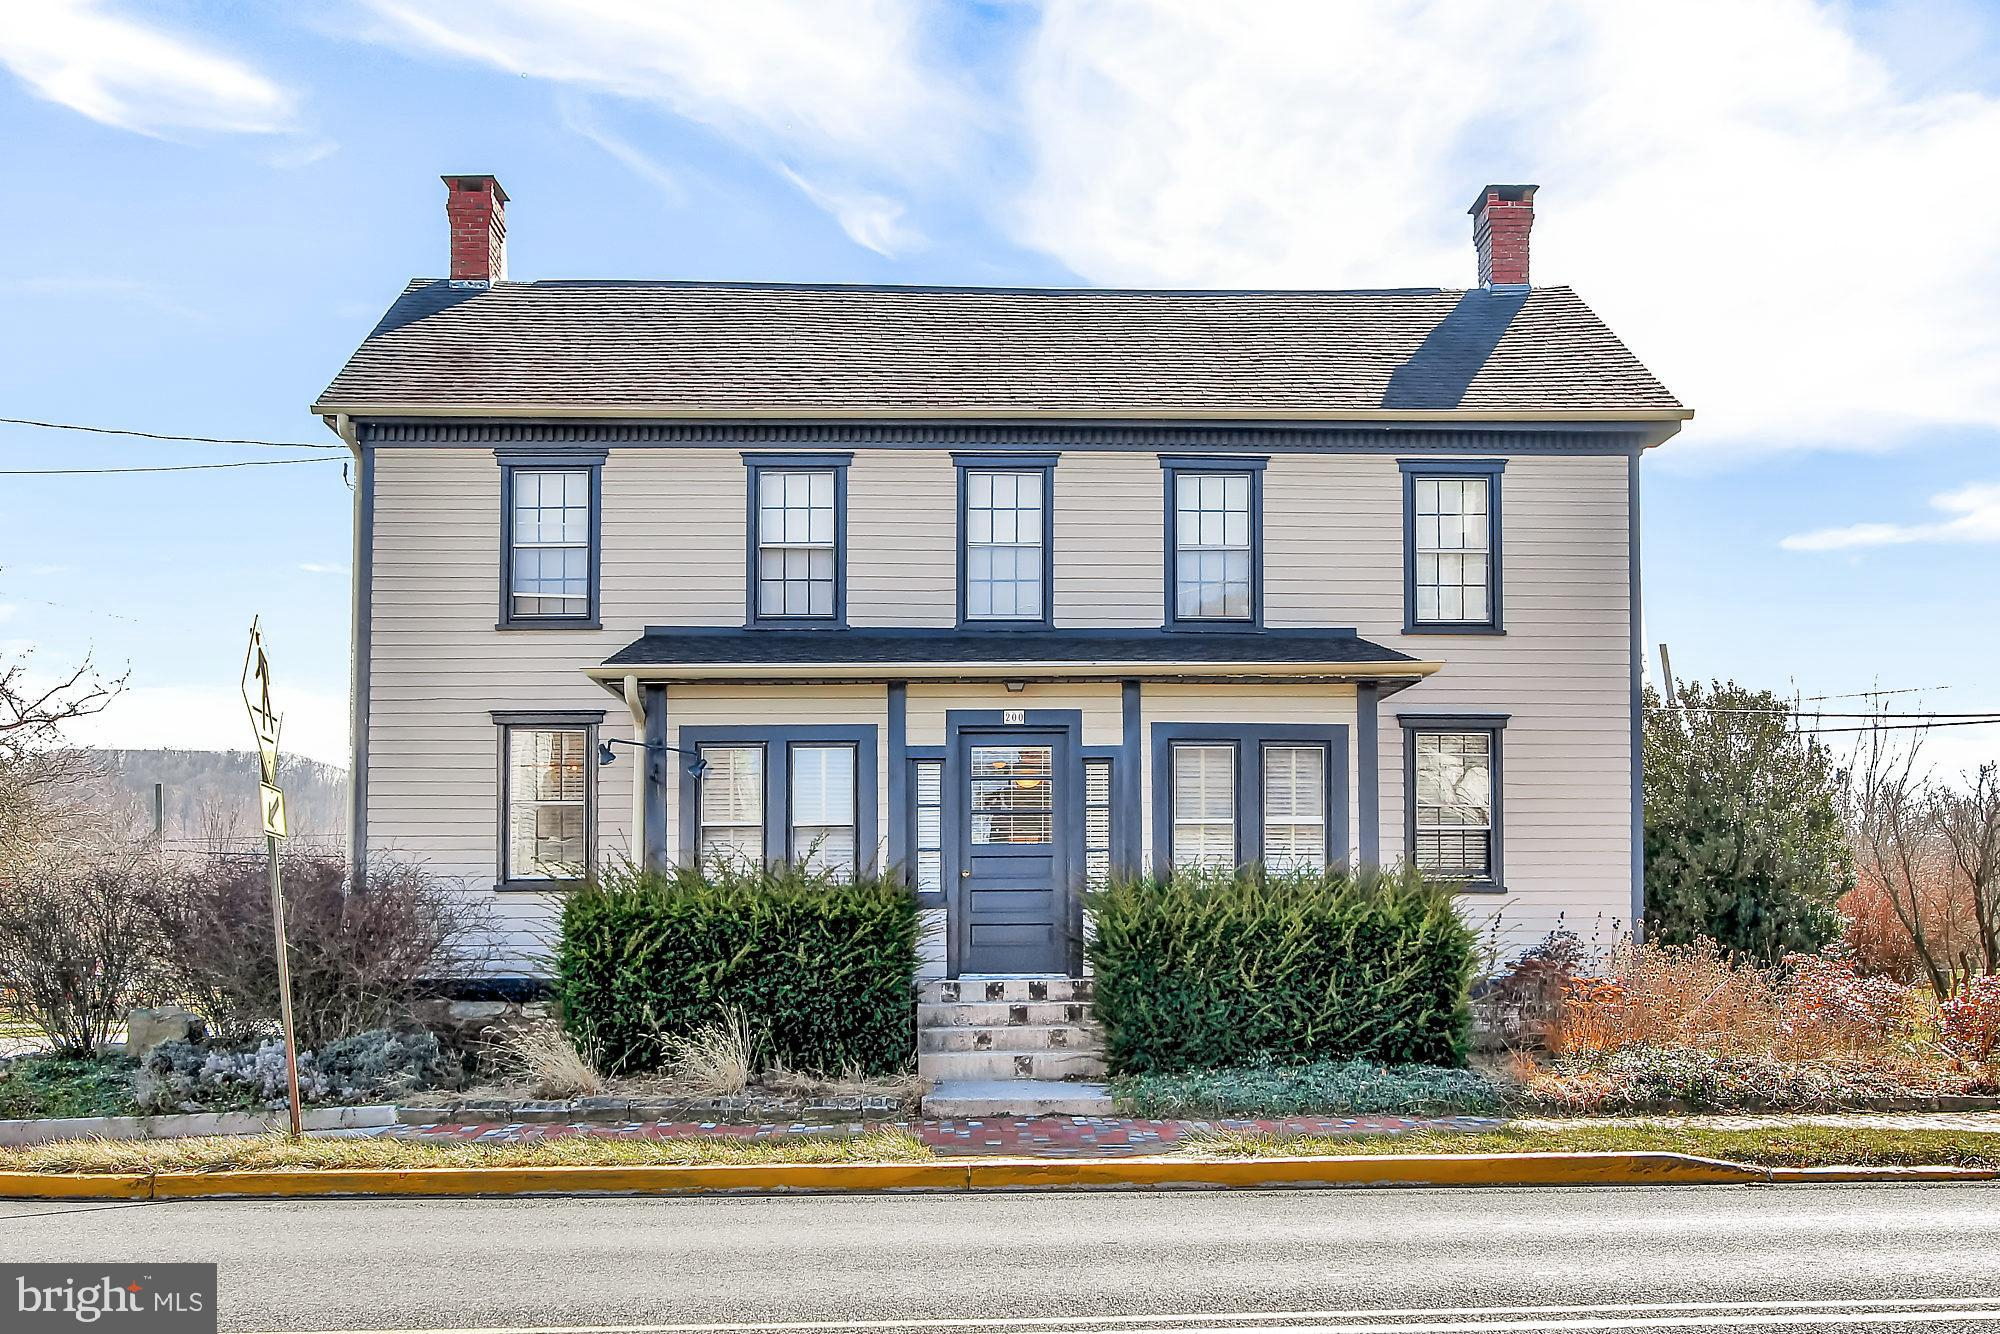 200 W MAIN STREET, FAIRFIELD, PA 17320